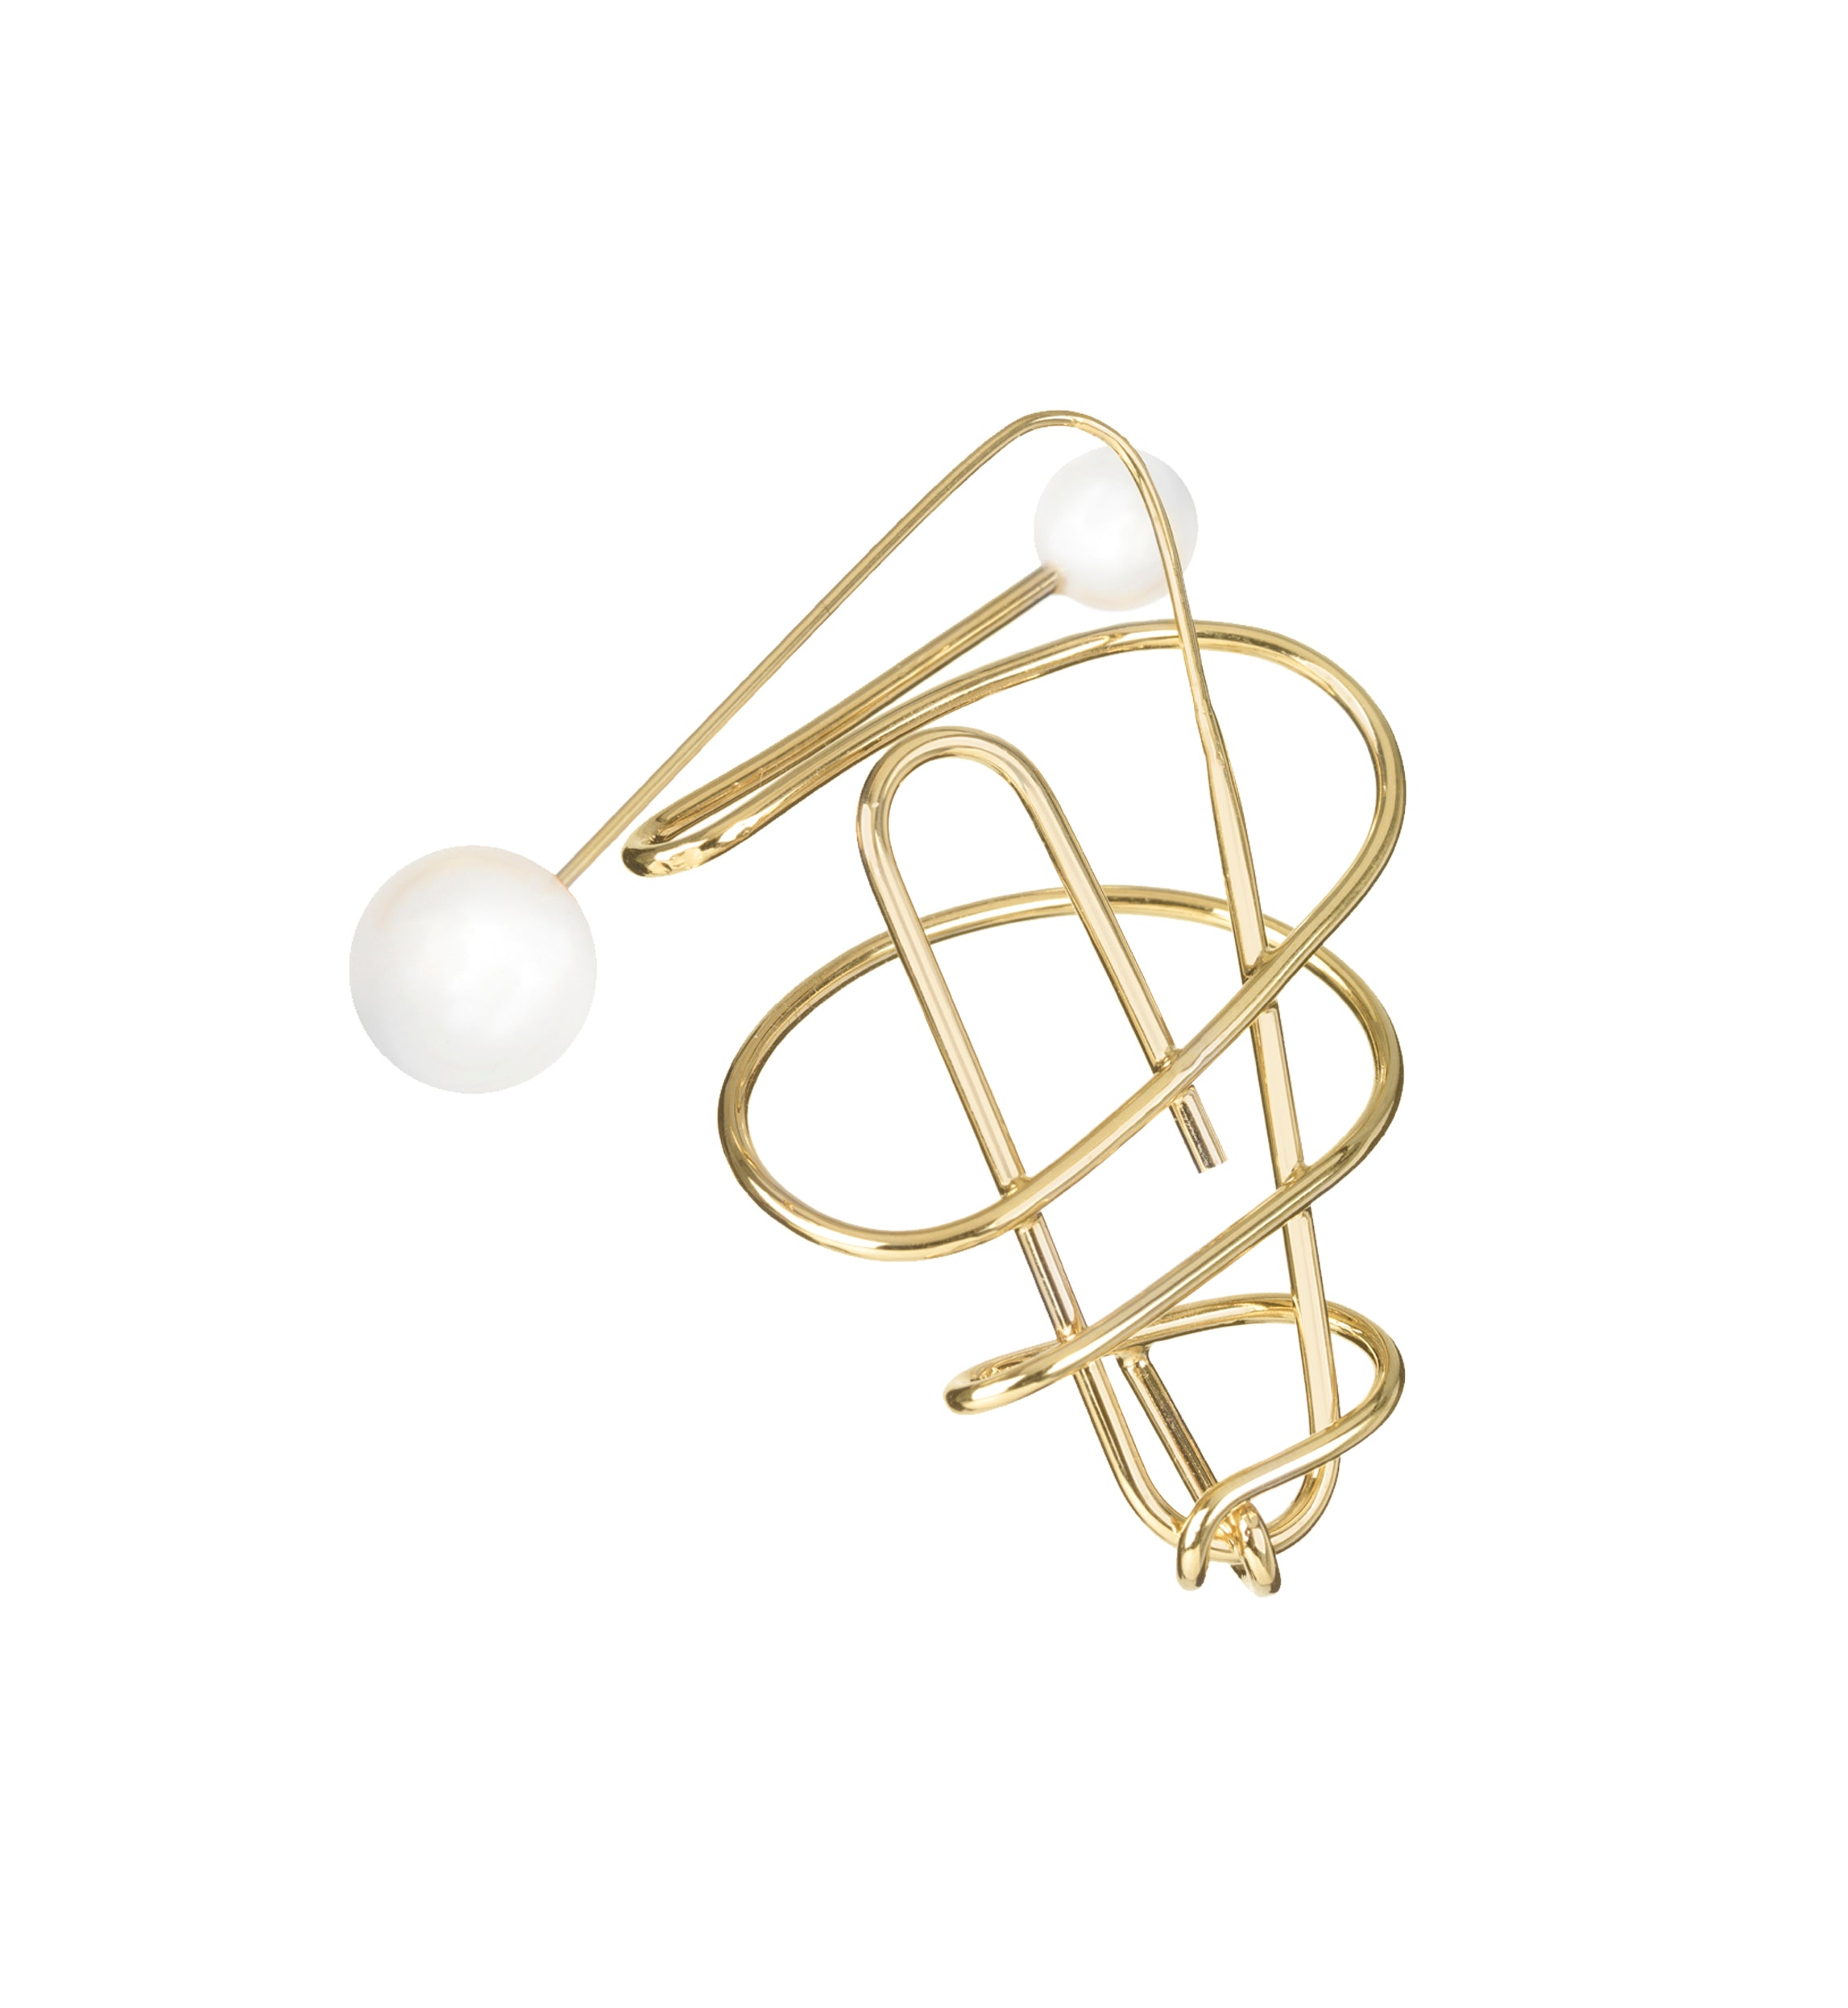 SPIRAL PAPERCLIP EARRING